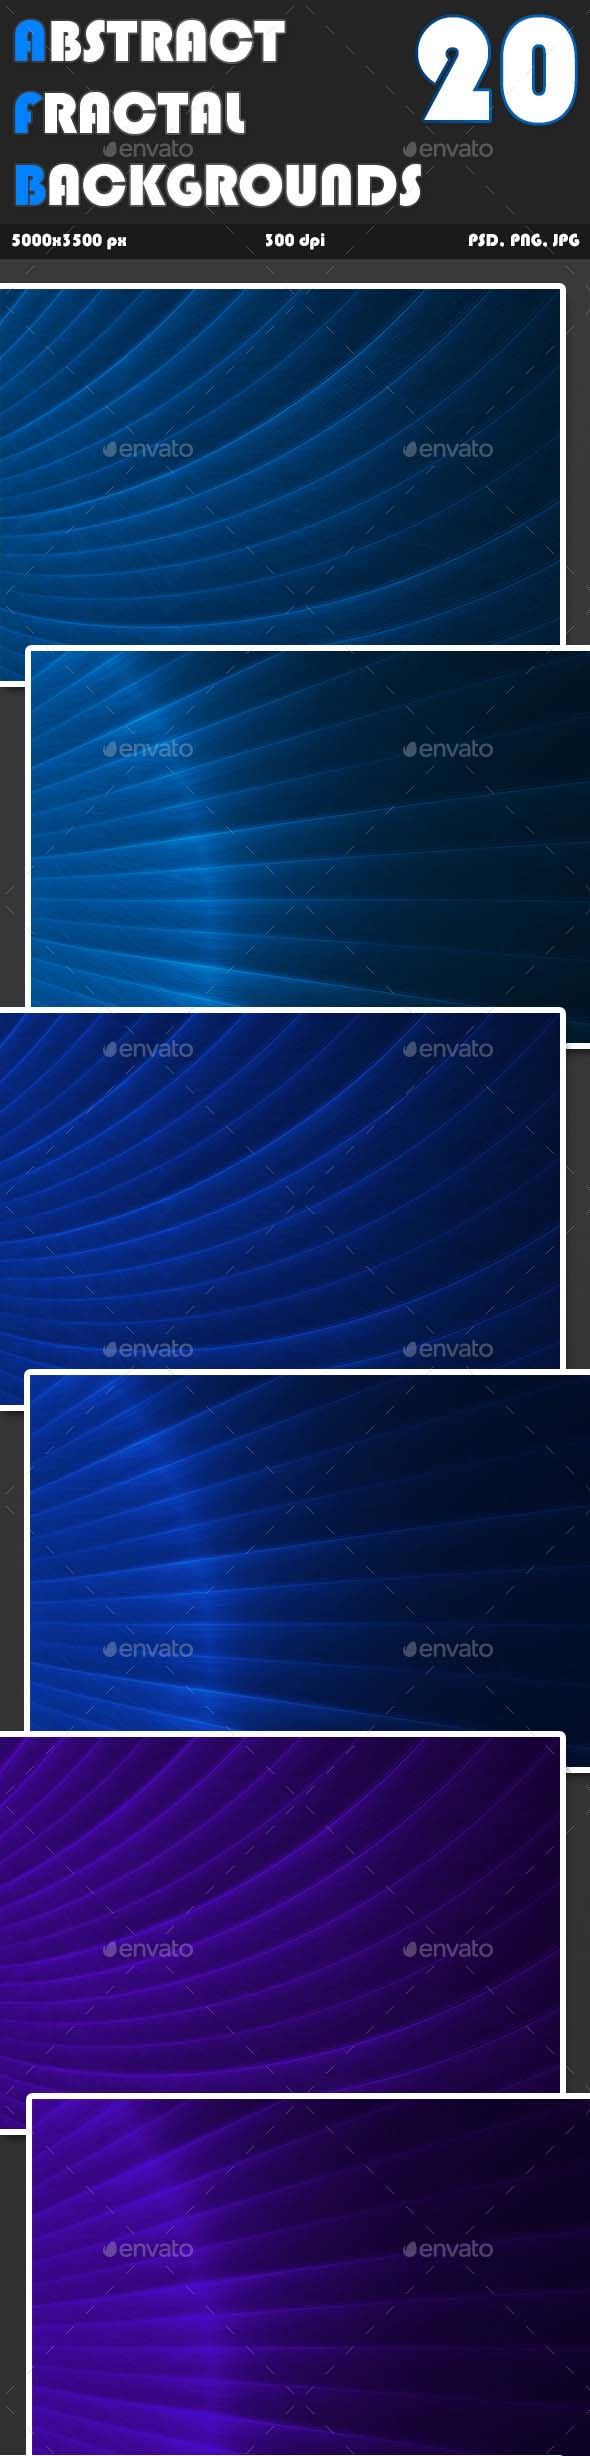 Abstract Fractal Backgrounds Vol1